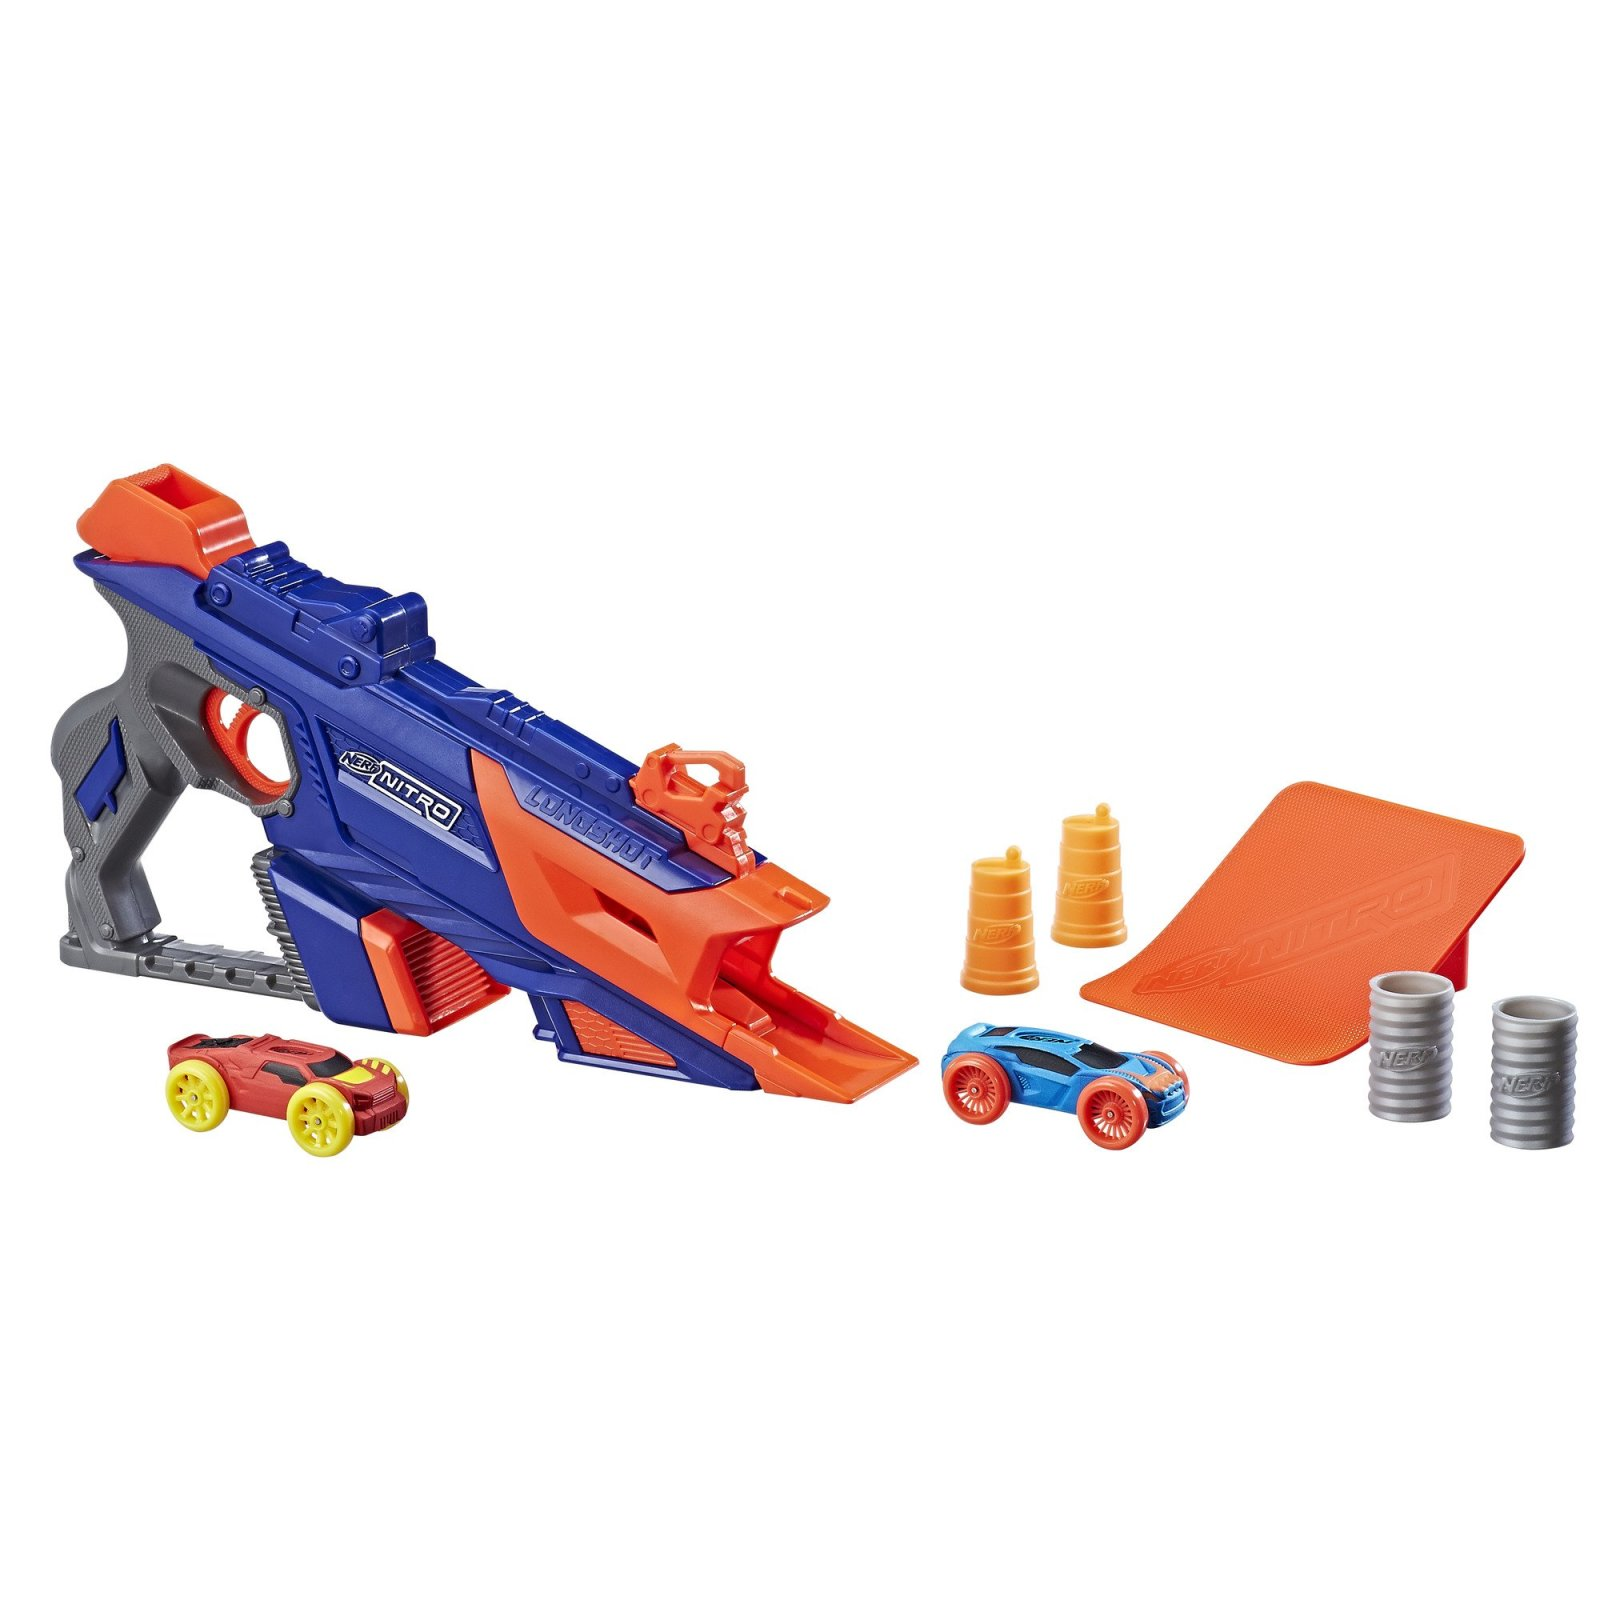 Nerf Nitro LongShot Smash car gun free shiping new ORIGINAL toys